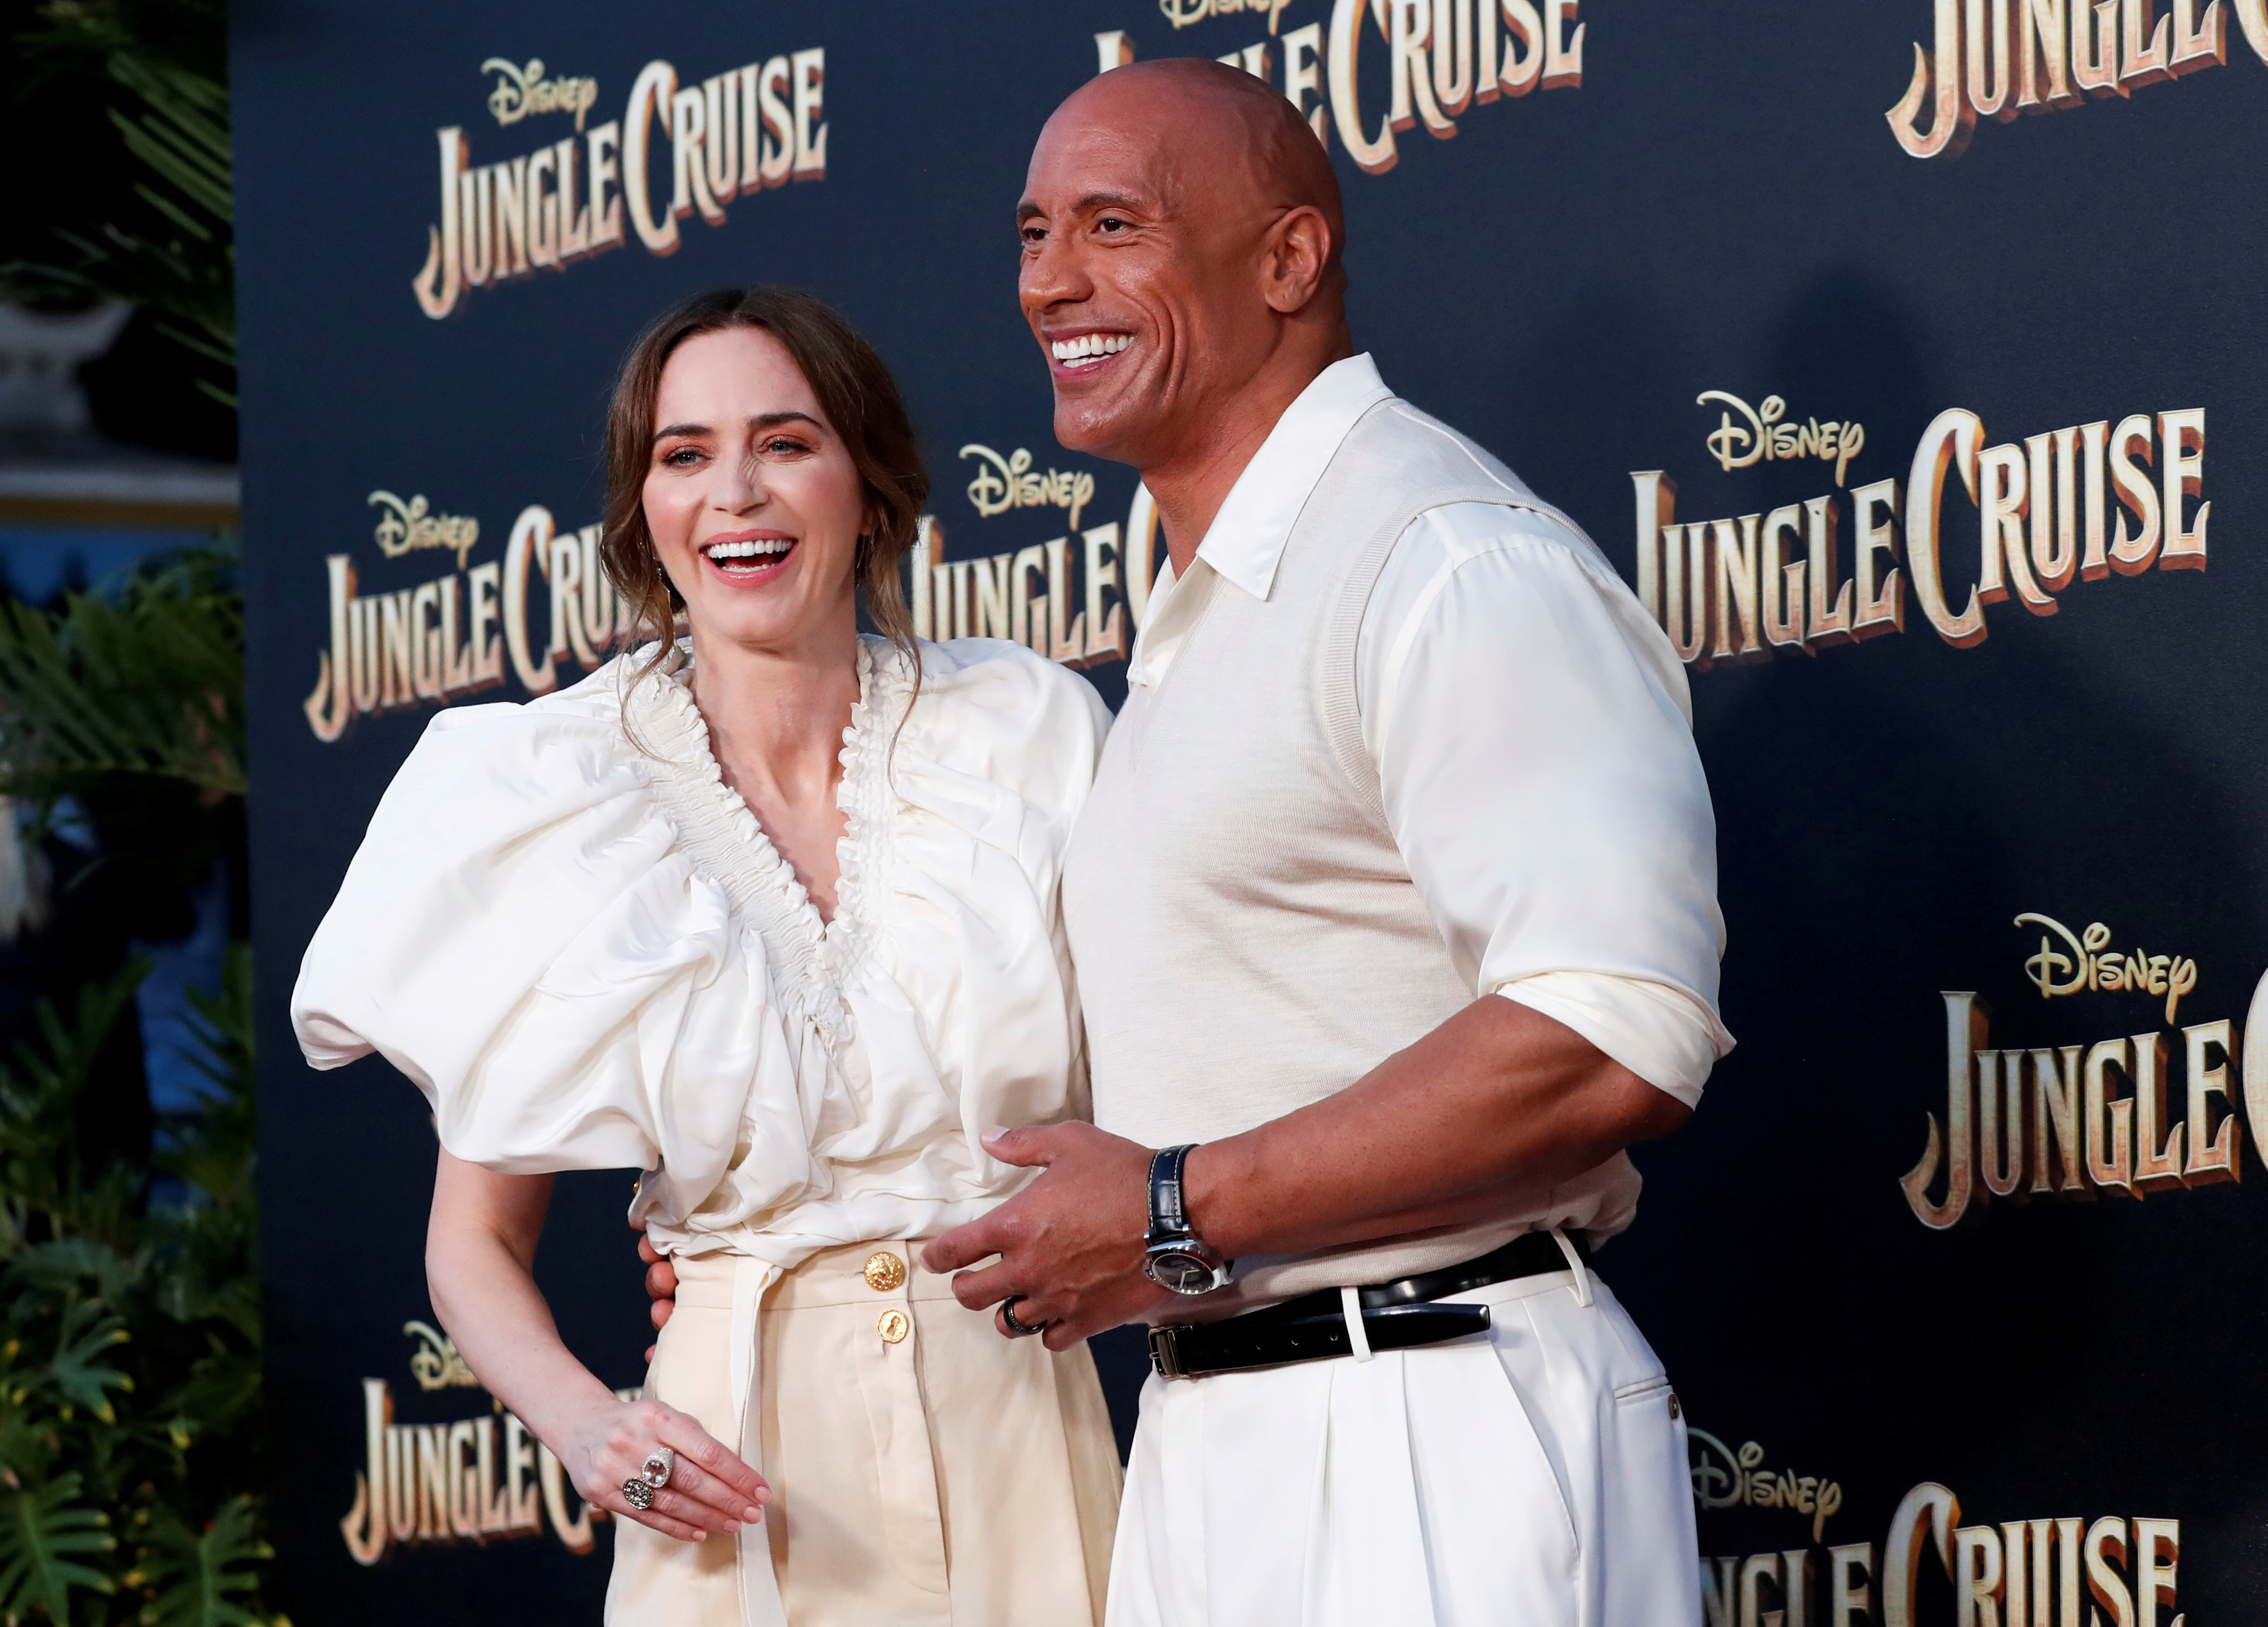 Cast members Dwayne Johnson and Emily Blunt attend the premiere for the film